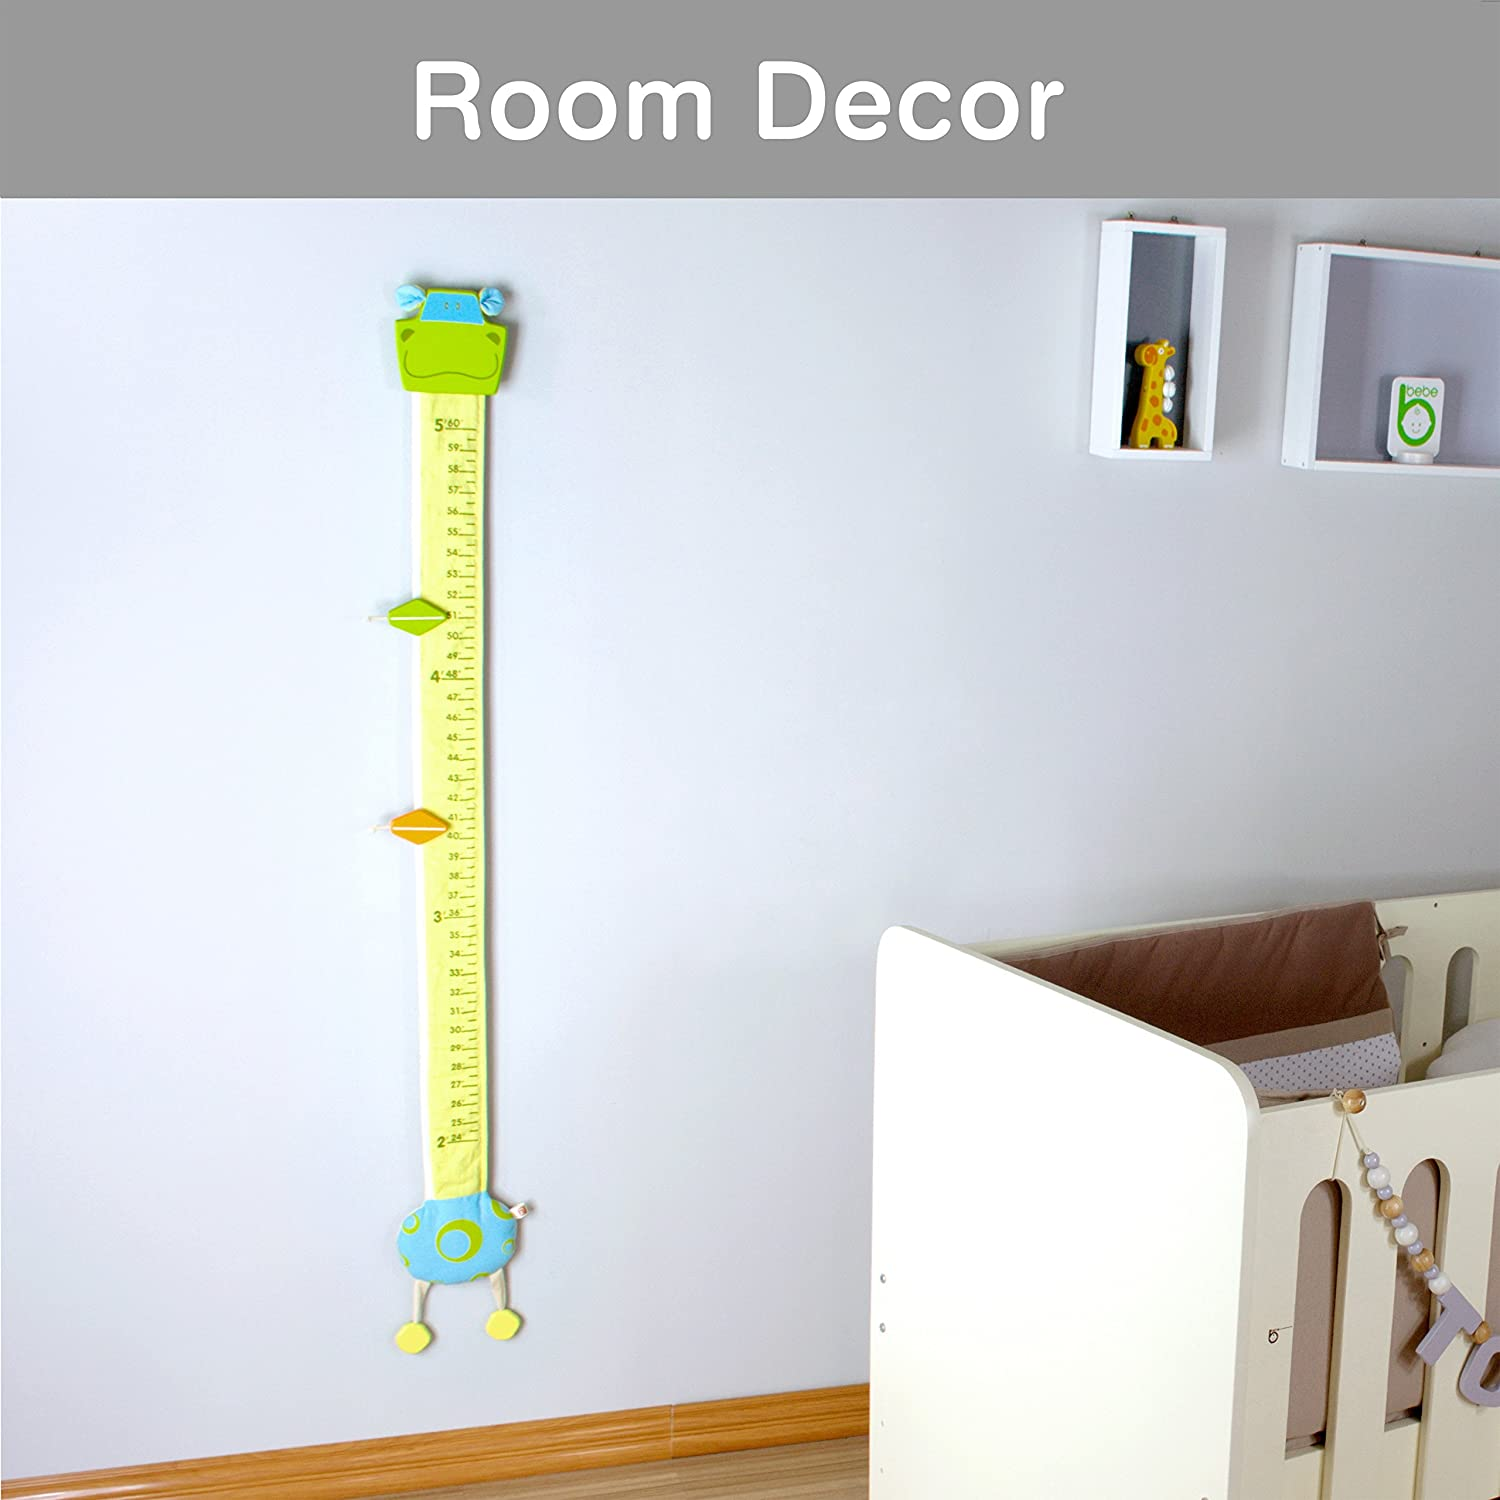 Ltd. Horse Height Measurement Im Wood and Fabric Wall Growth Chart Scale Ruler for Kids I/'m International Co